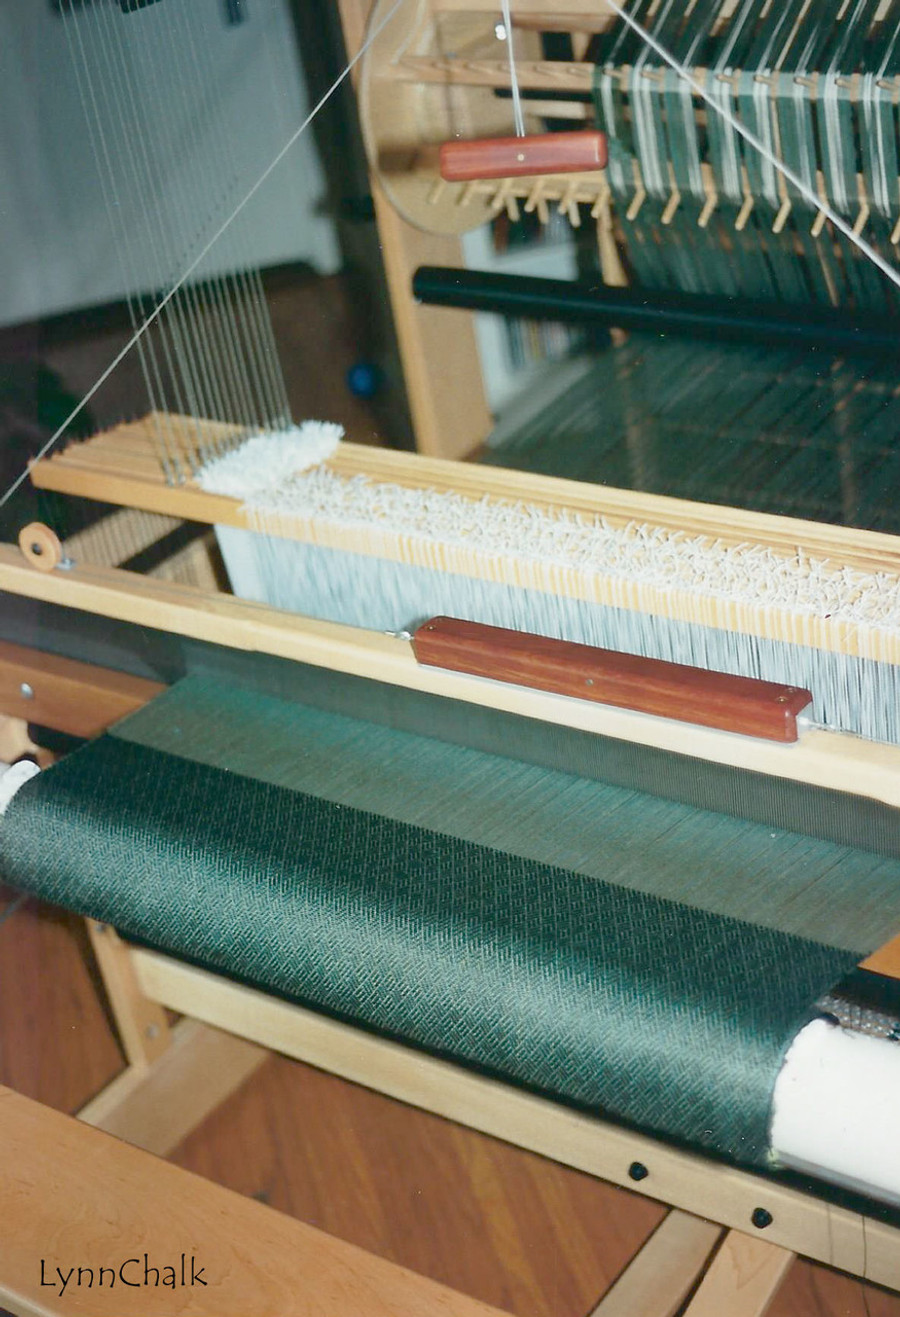 AVL Compu-Dobby Loom with Fabric being woven